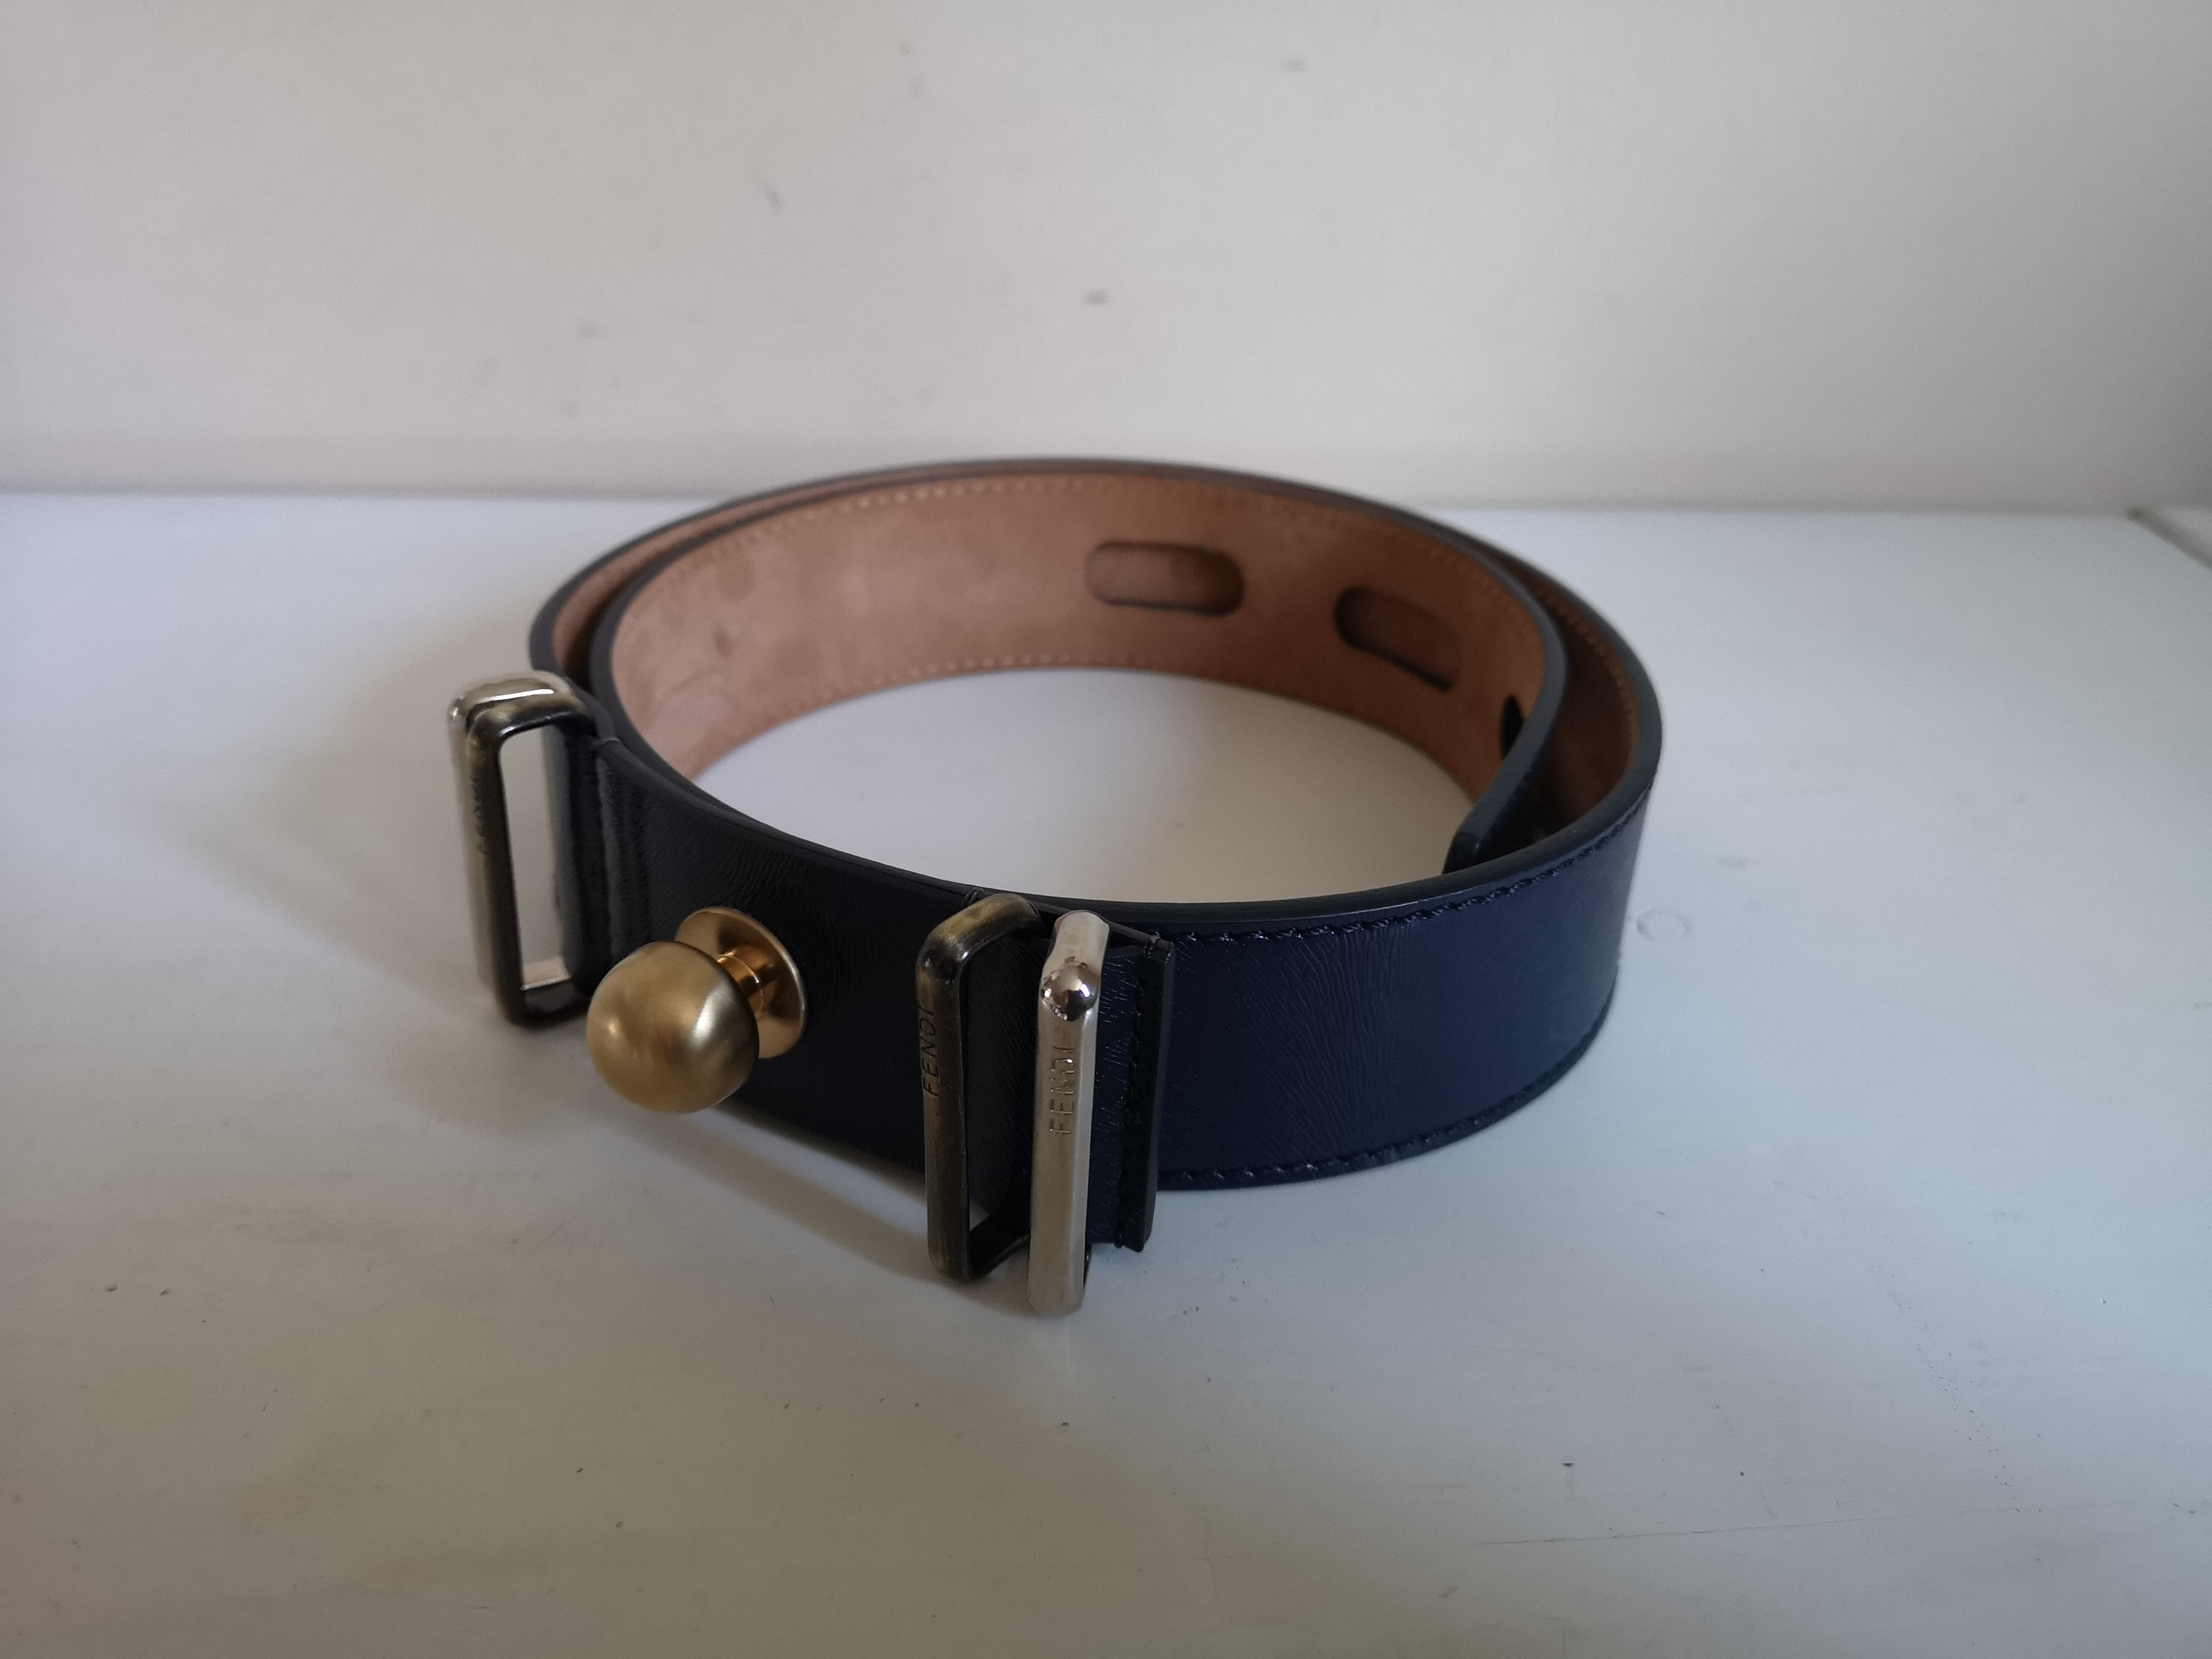 fc7b1e3539 Fendi Leather Belt